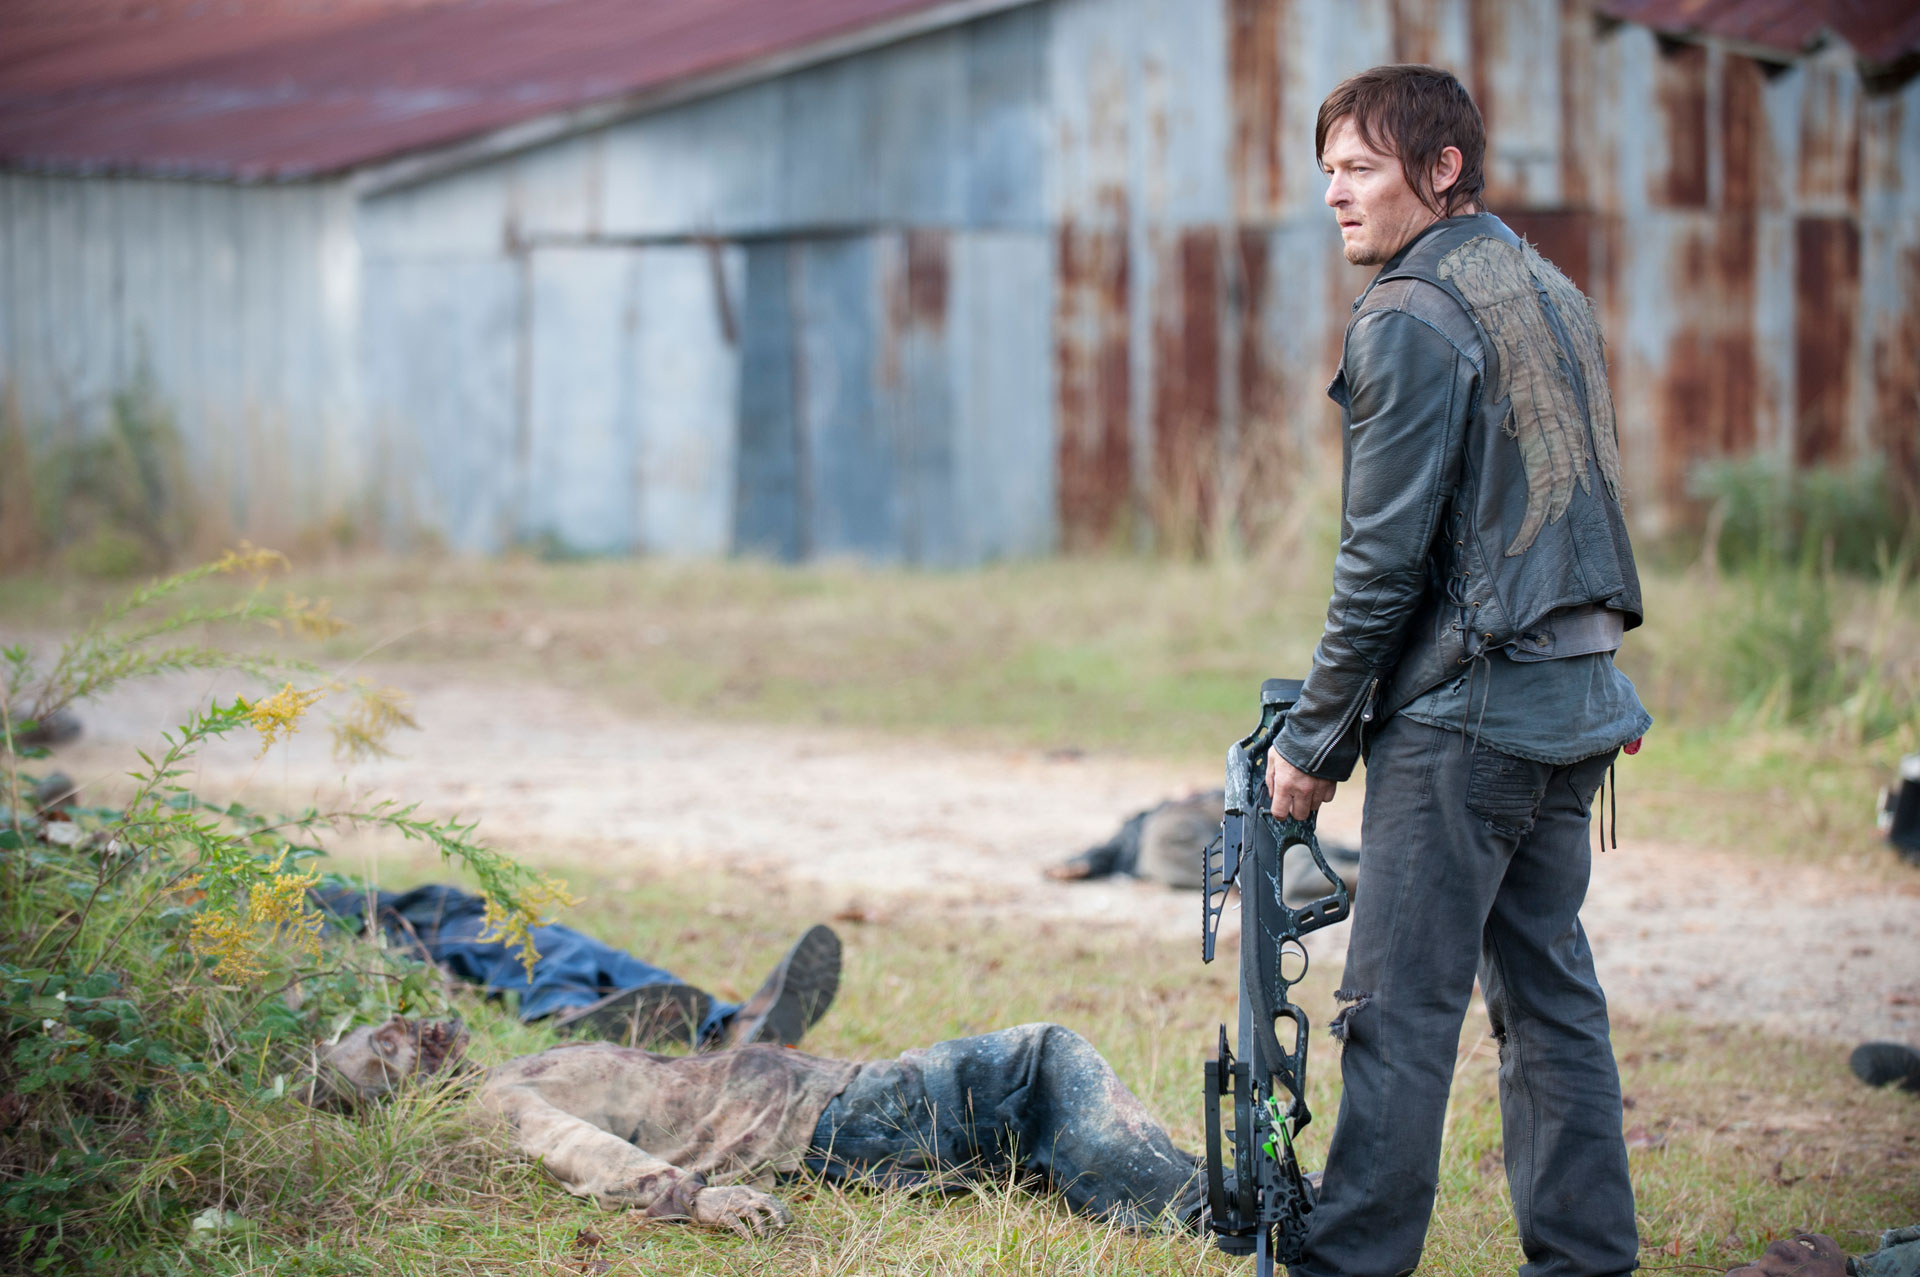 The Walking Dead Season 3 Episode 315 'This Sorrowful Life' Images and  Footage